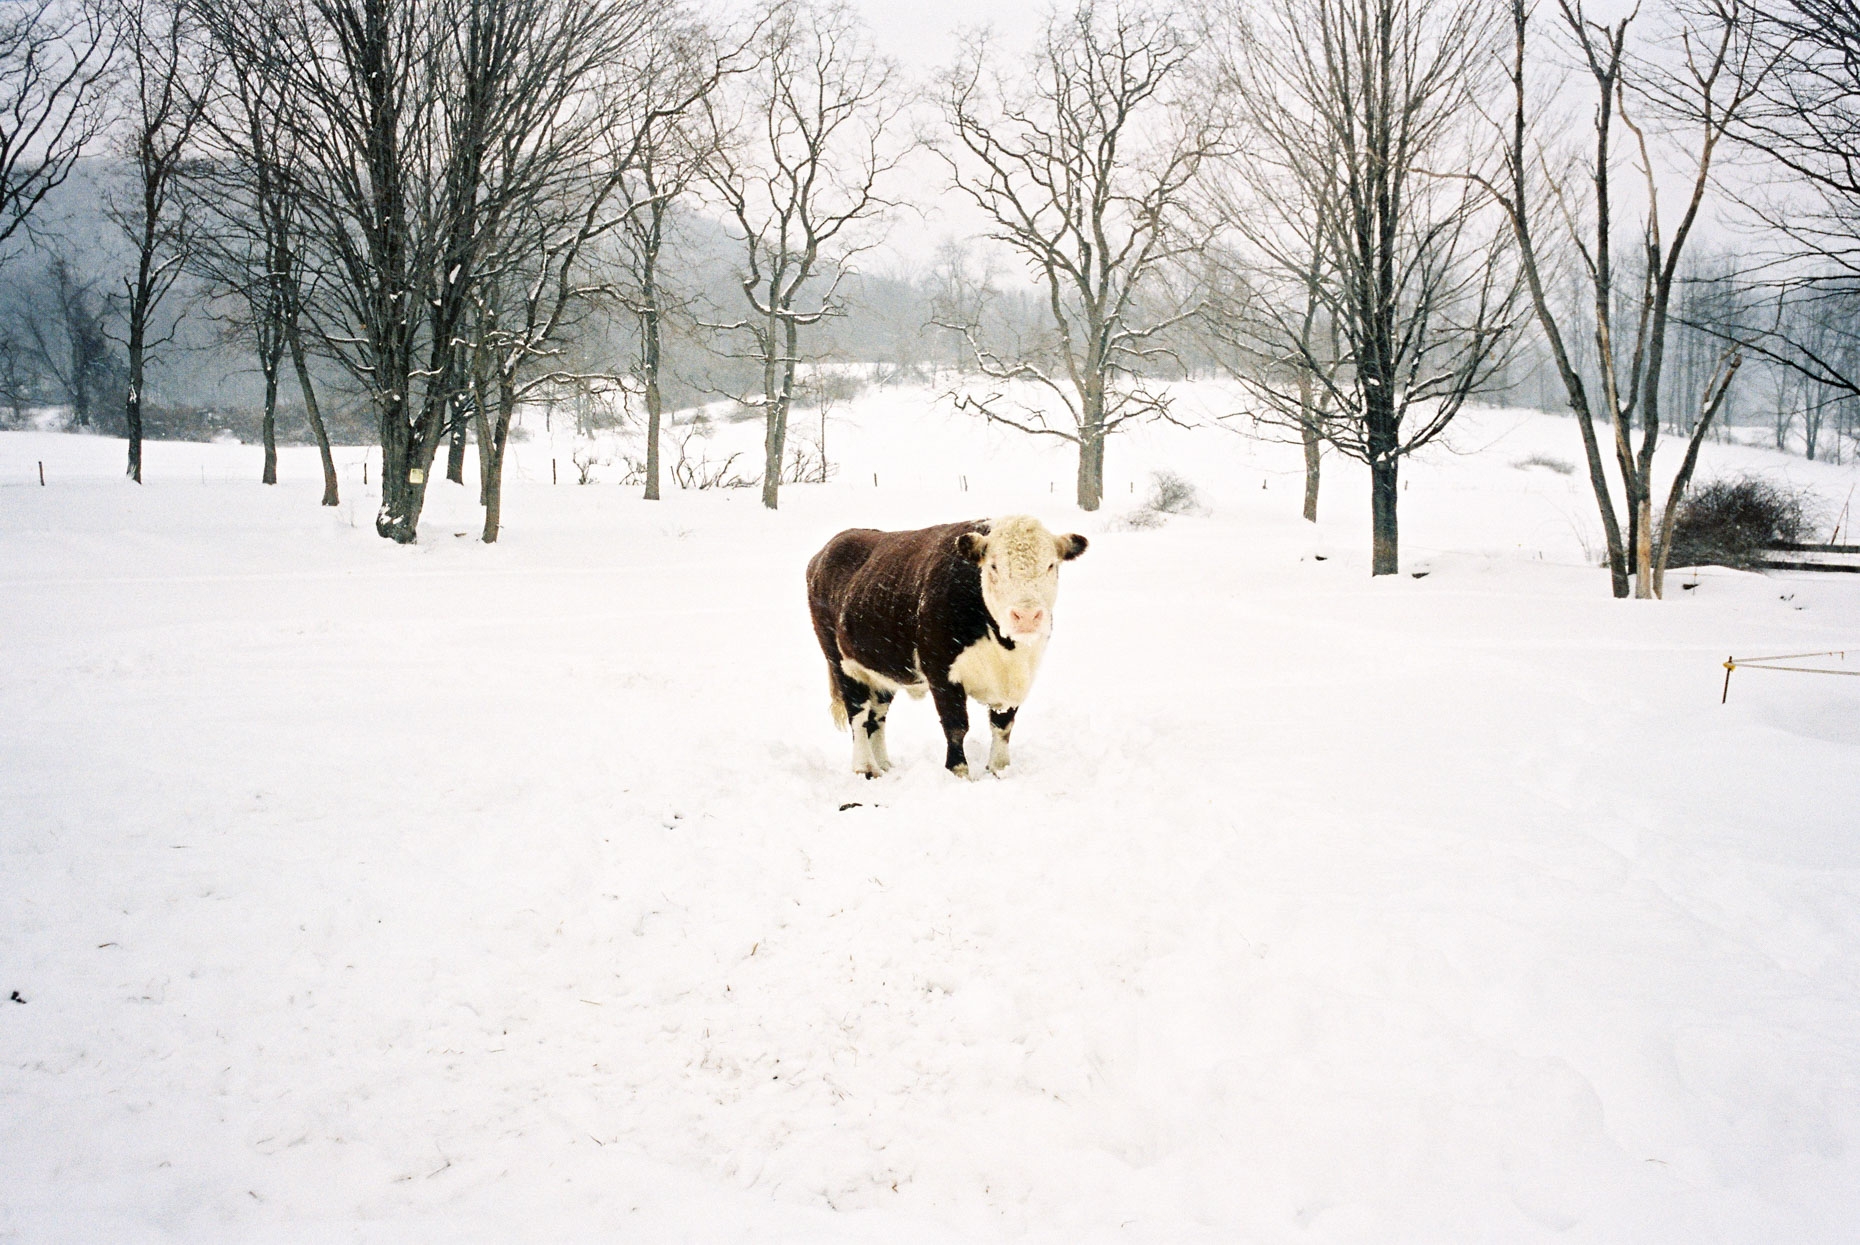 A cow in a snowy fileld, upsatate New York.